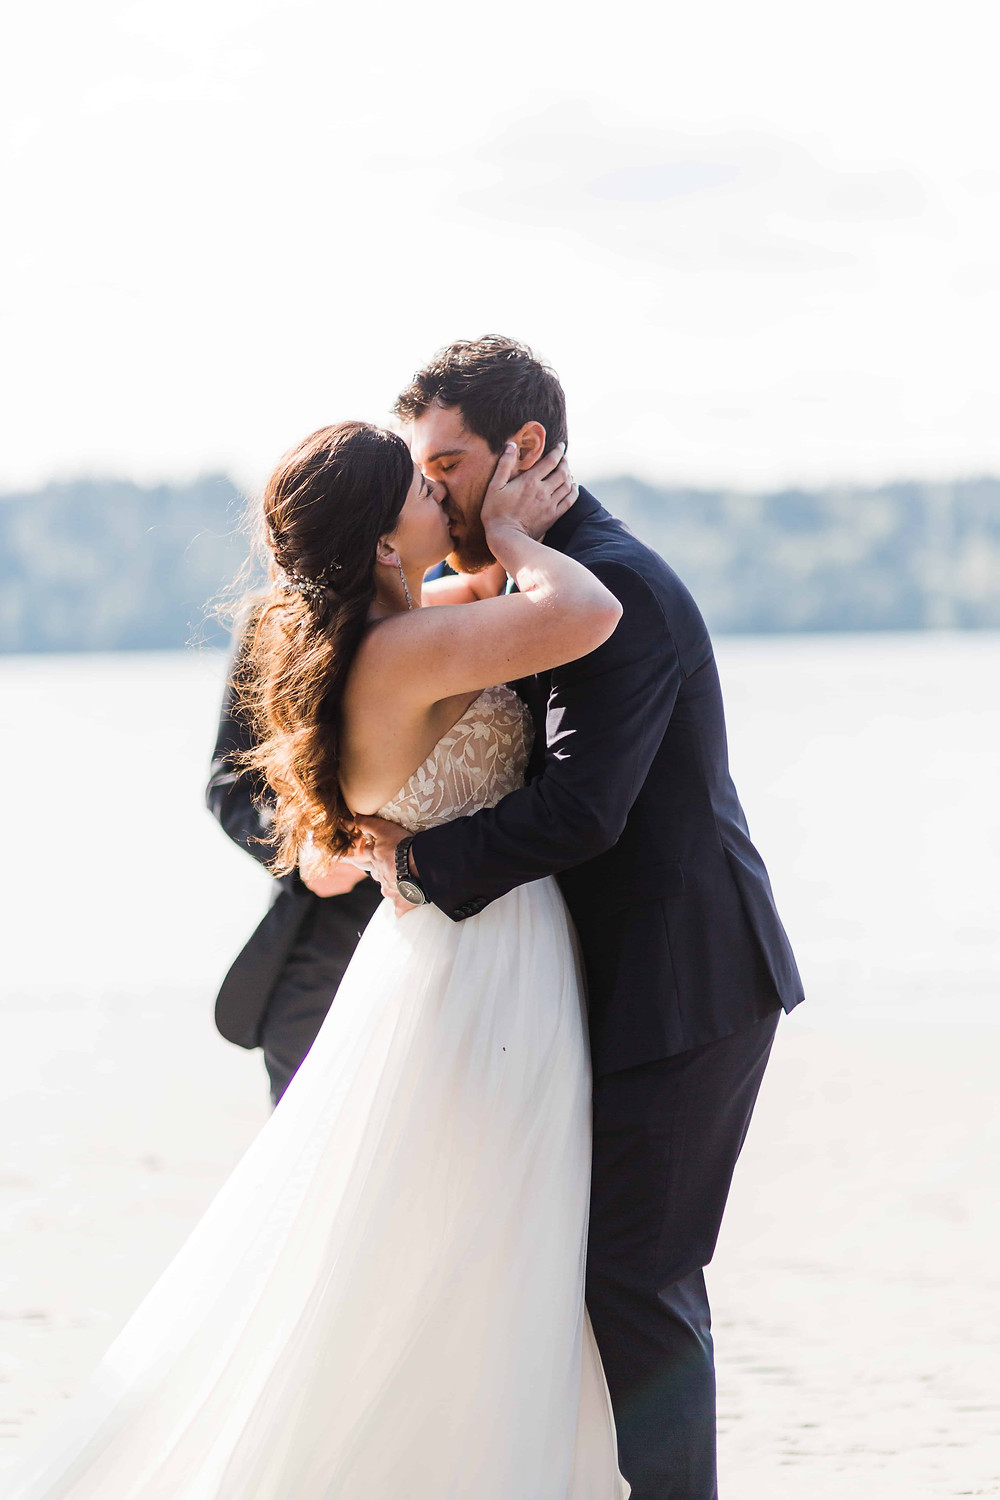 A man and a woman share their first married kiss at their elopement ceremony!